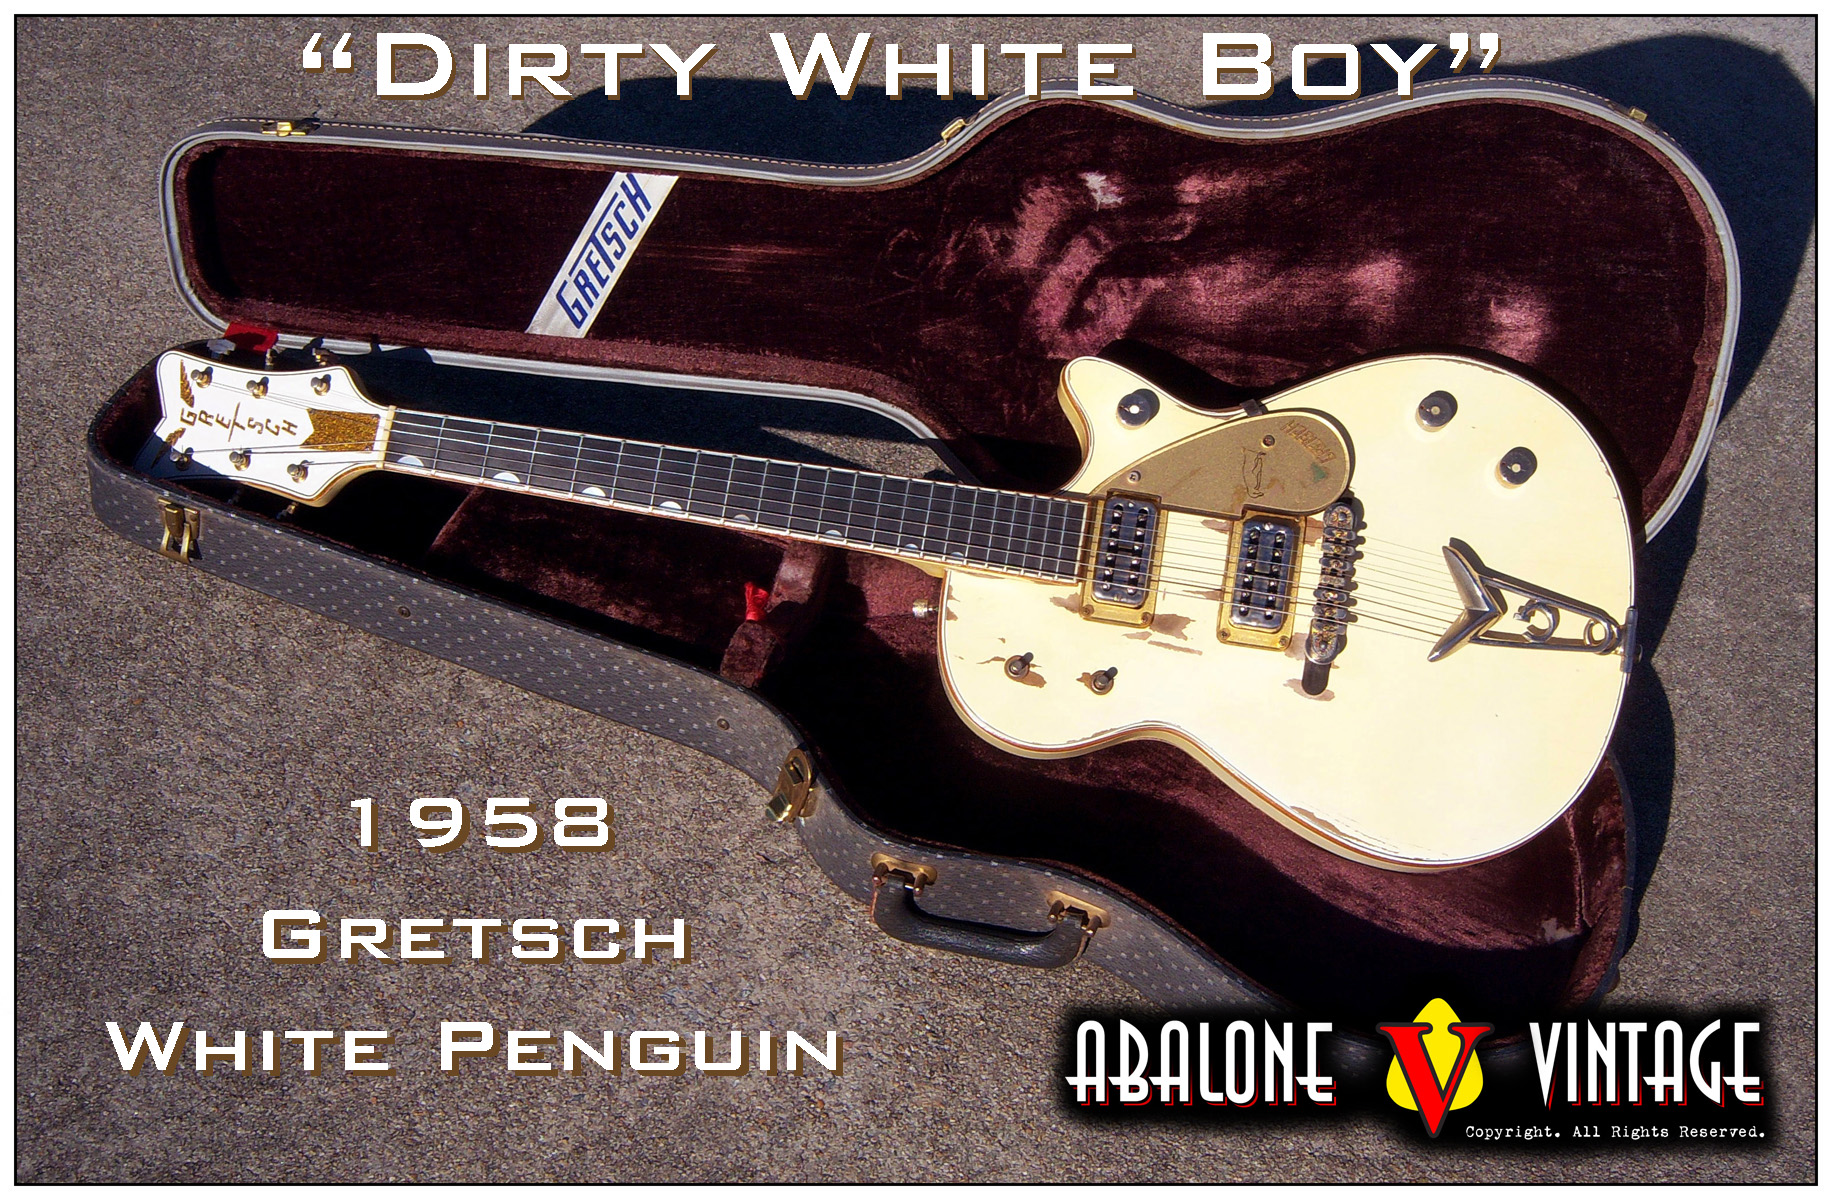 1958 Gretsch White Penguin guitar vintage guitars dirty white boy guitar world